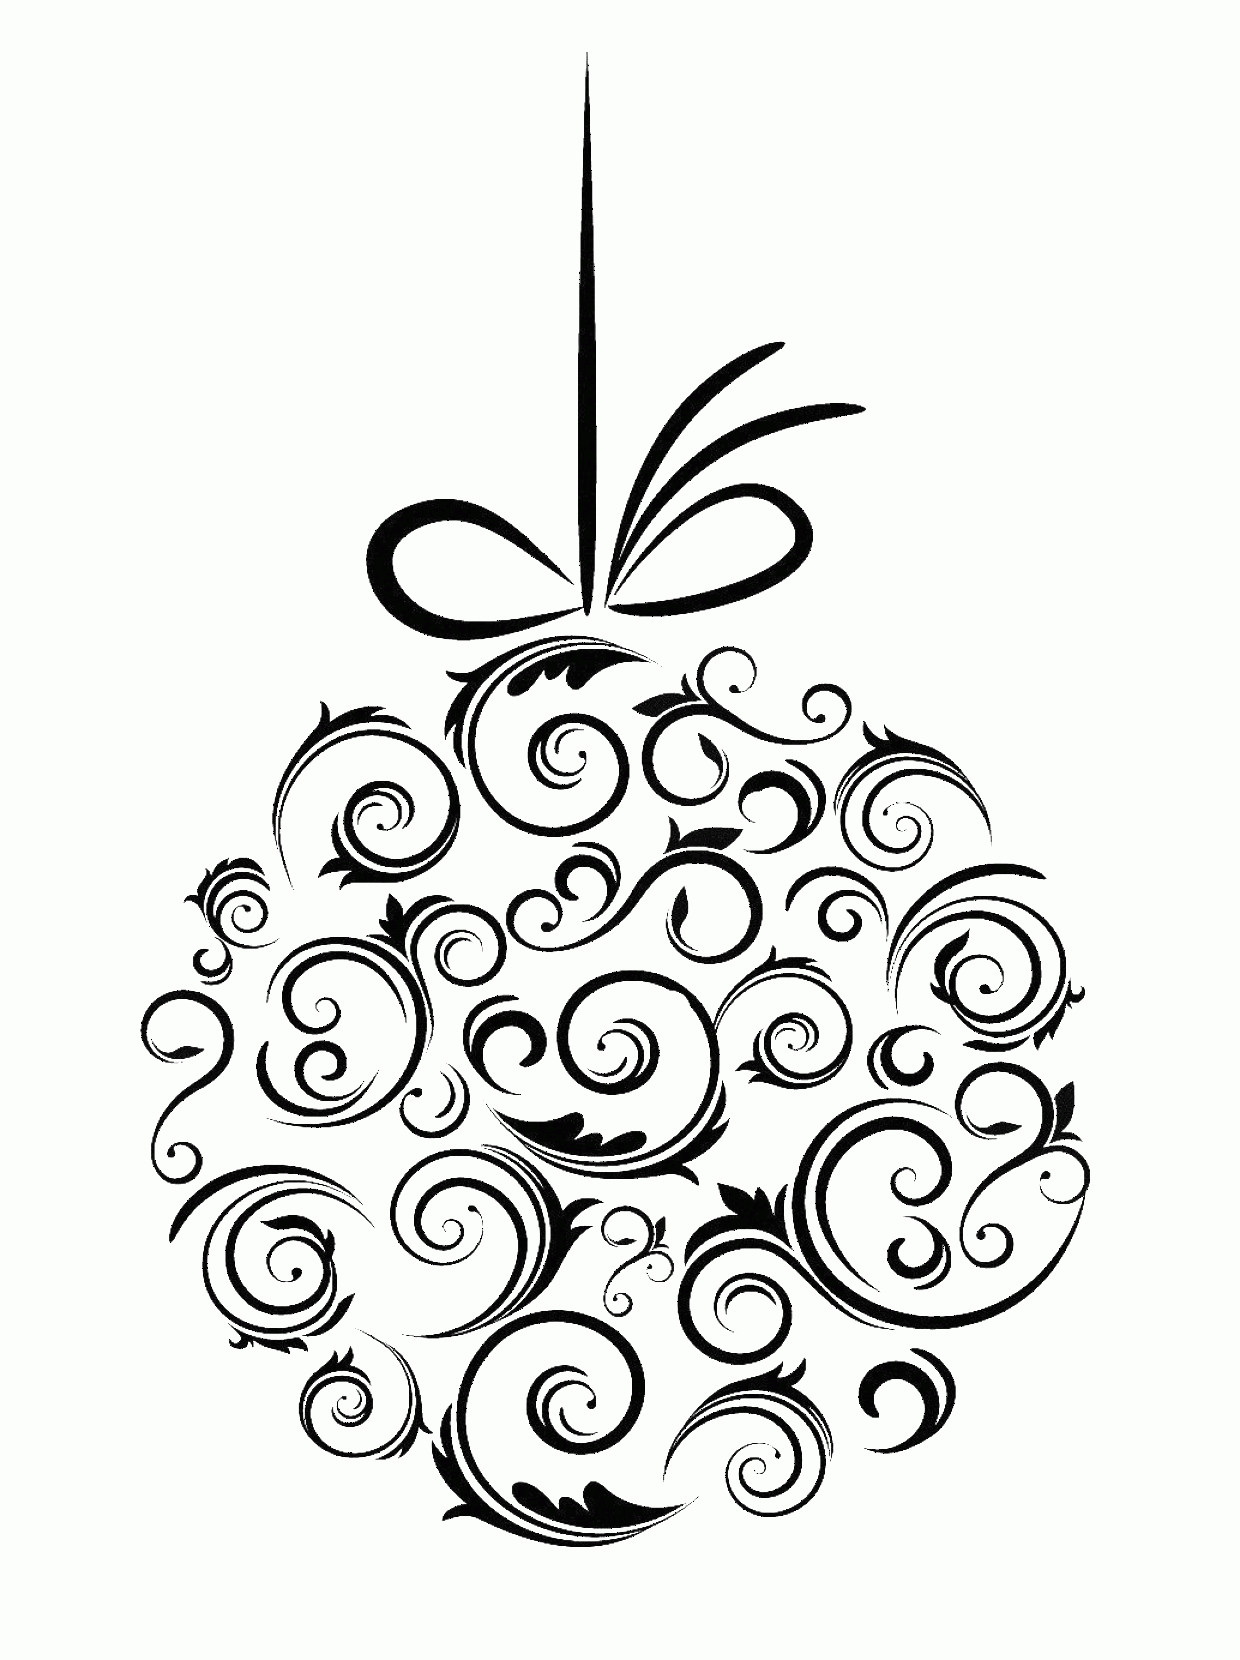 Black And White Christmas Ornament Vector Art: Rustic Christmas Clipart Black And White Present